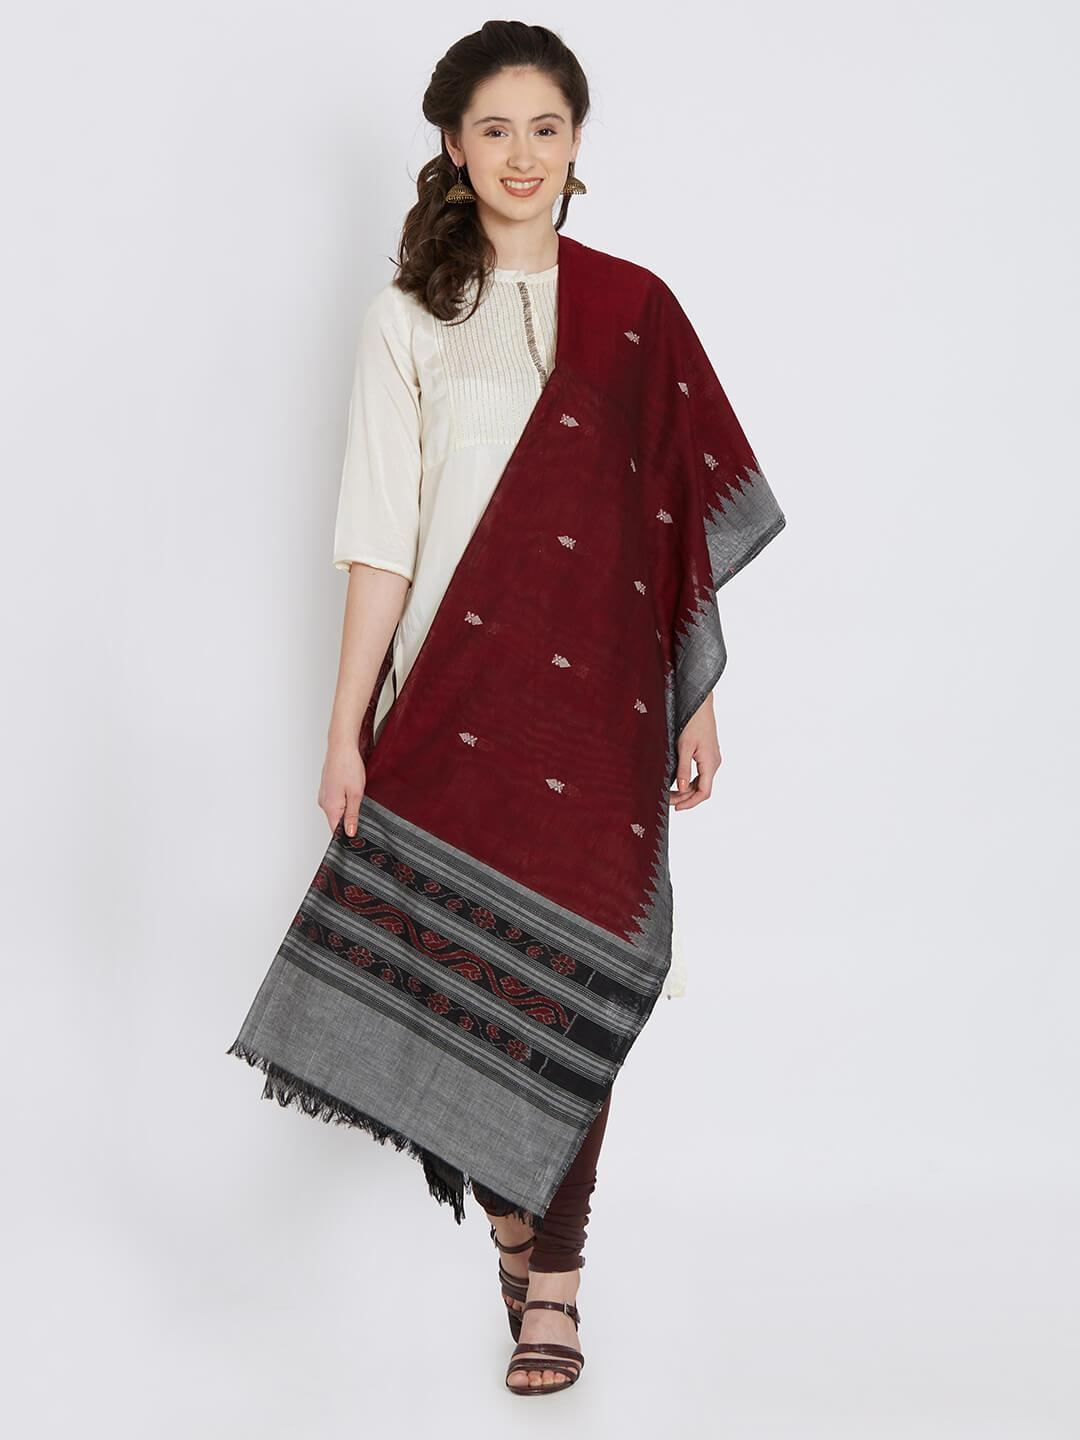 CraftsCollection.in - Maroon Grey Sambalpuri Bomkai Cotton Dupatta